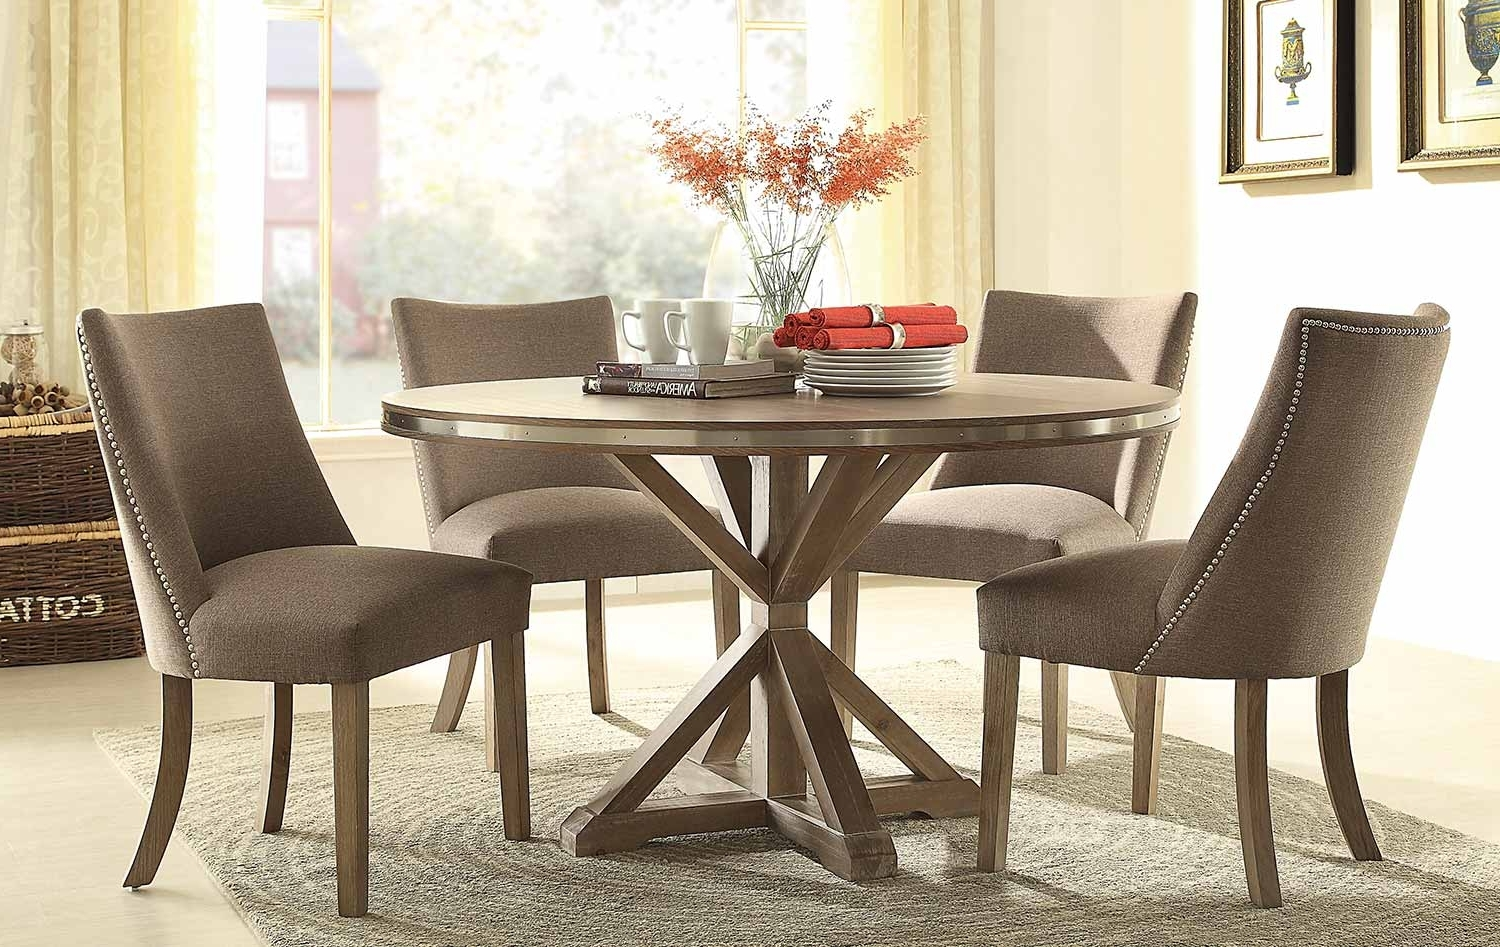 52 54 Round Dining Table Set, Espresso 54Quot; Round Pedestal Dining Intended For Latest Caira Black Round Dining Tables (View 2 of 25)